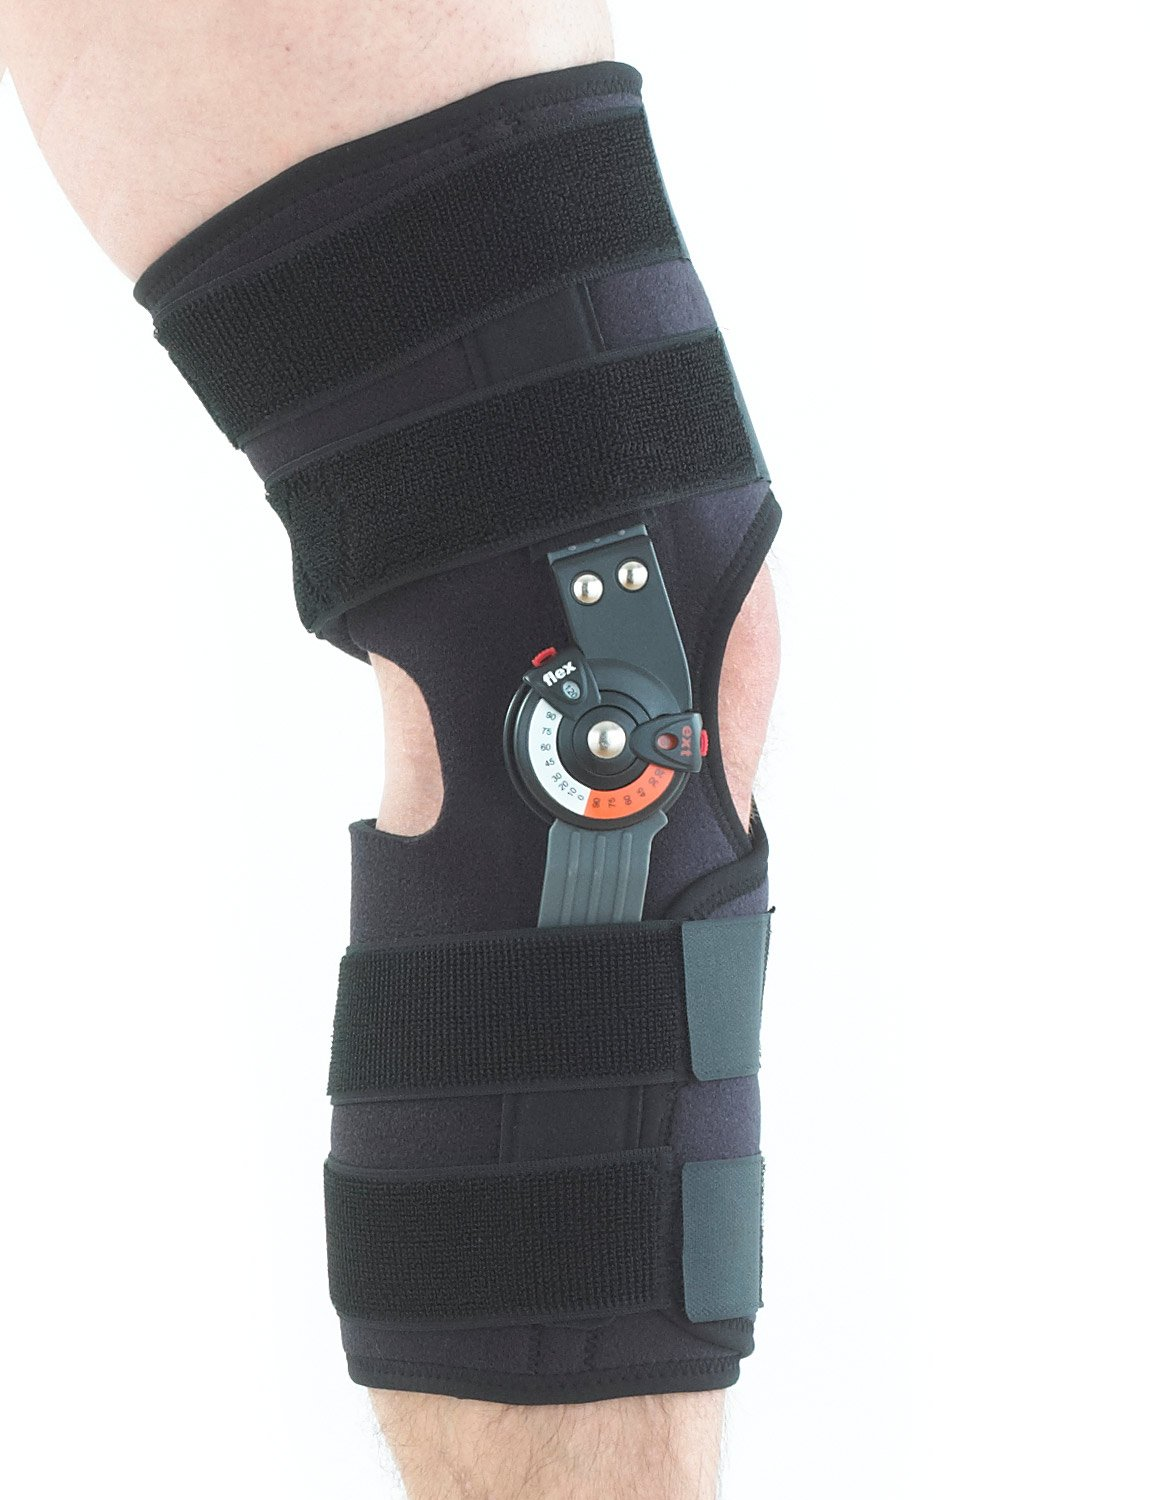 Neo G Hinged Knee Brace, Adjusta Fit - Open Patella - Support For Arthritis, Joint Pain, Tendon, Ligament Strains, ACL, Injury Recovery - Adjustable Dials - Class 1 Medical Device - One Size - Black by Neo-G